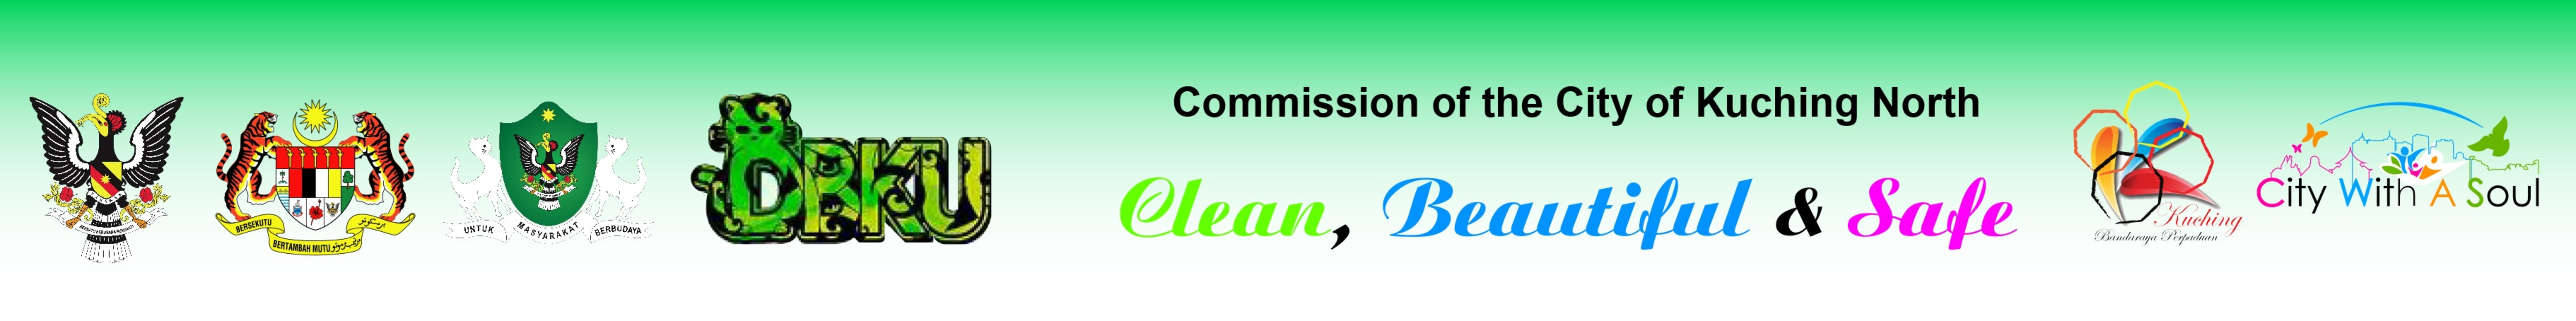 Welcome to Official Website of the Commission Of The City Of Kuching North